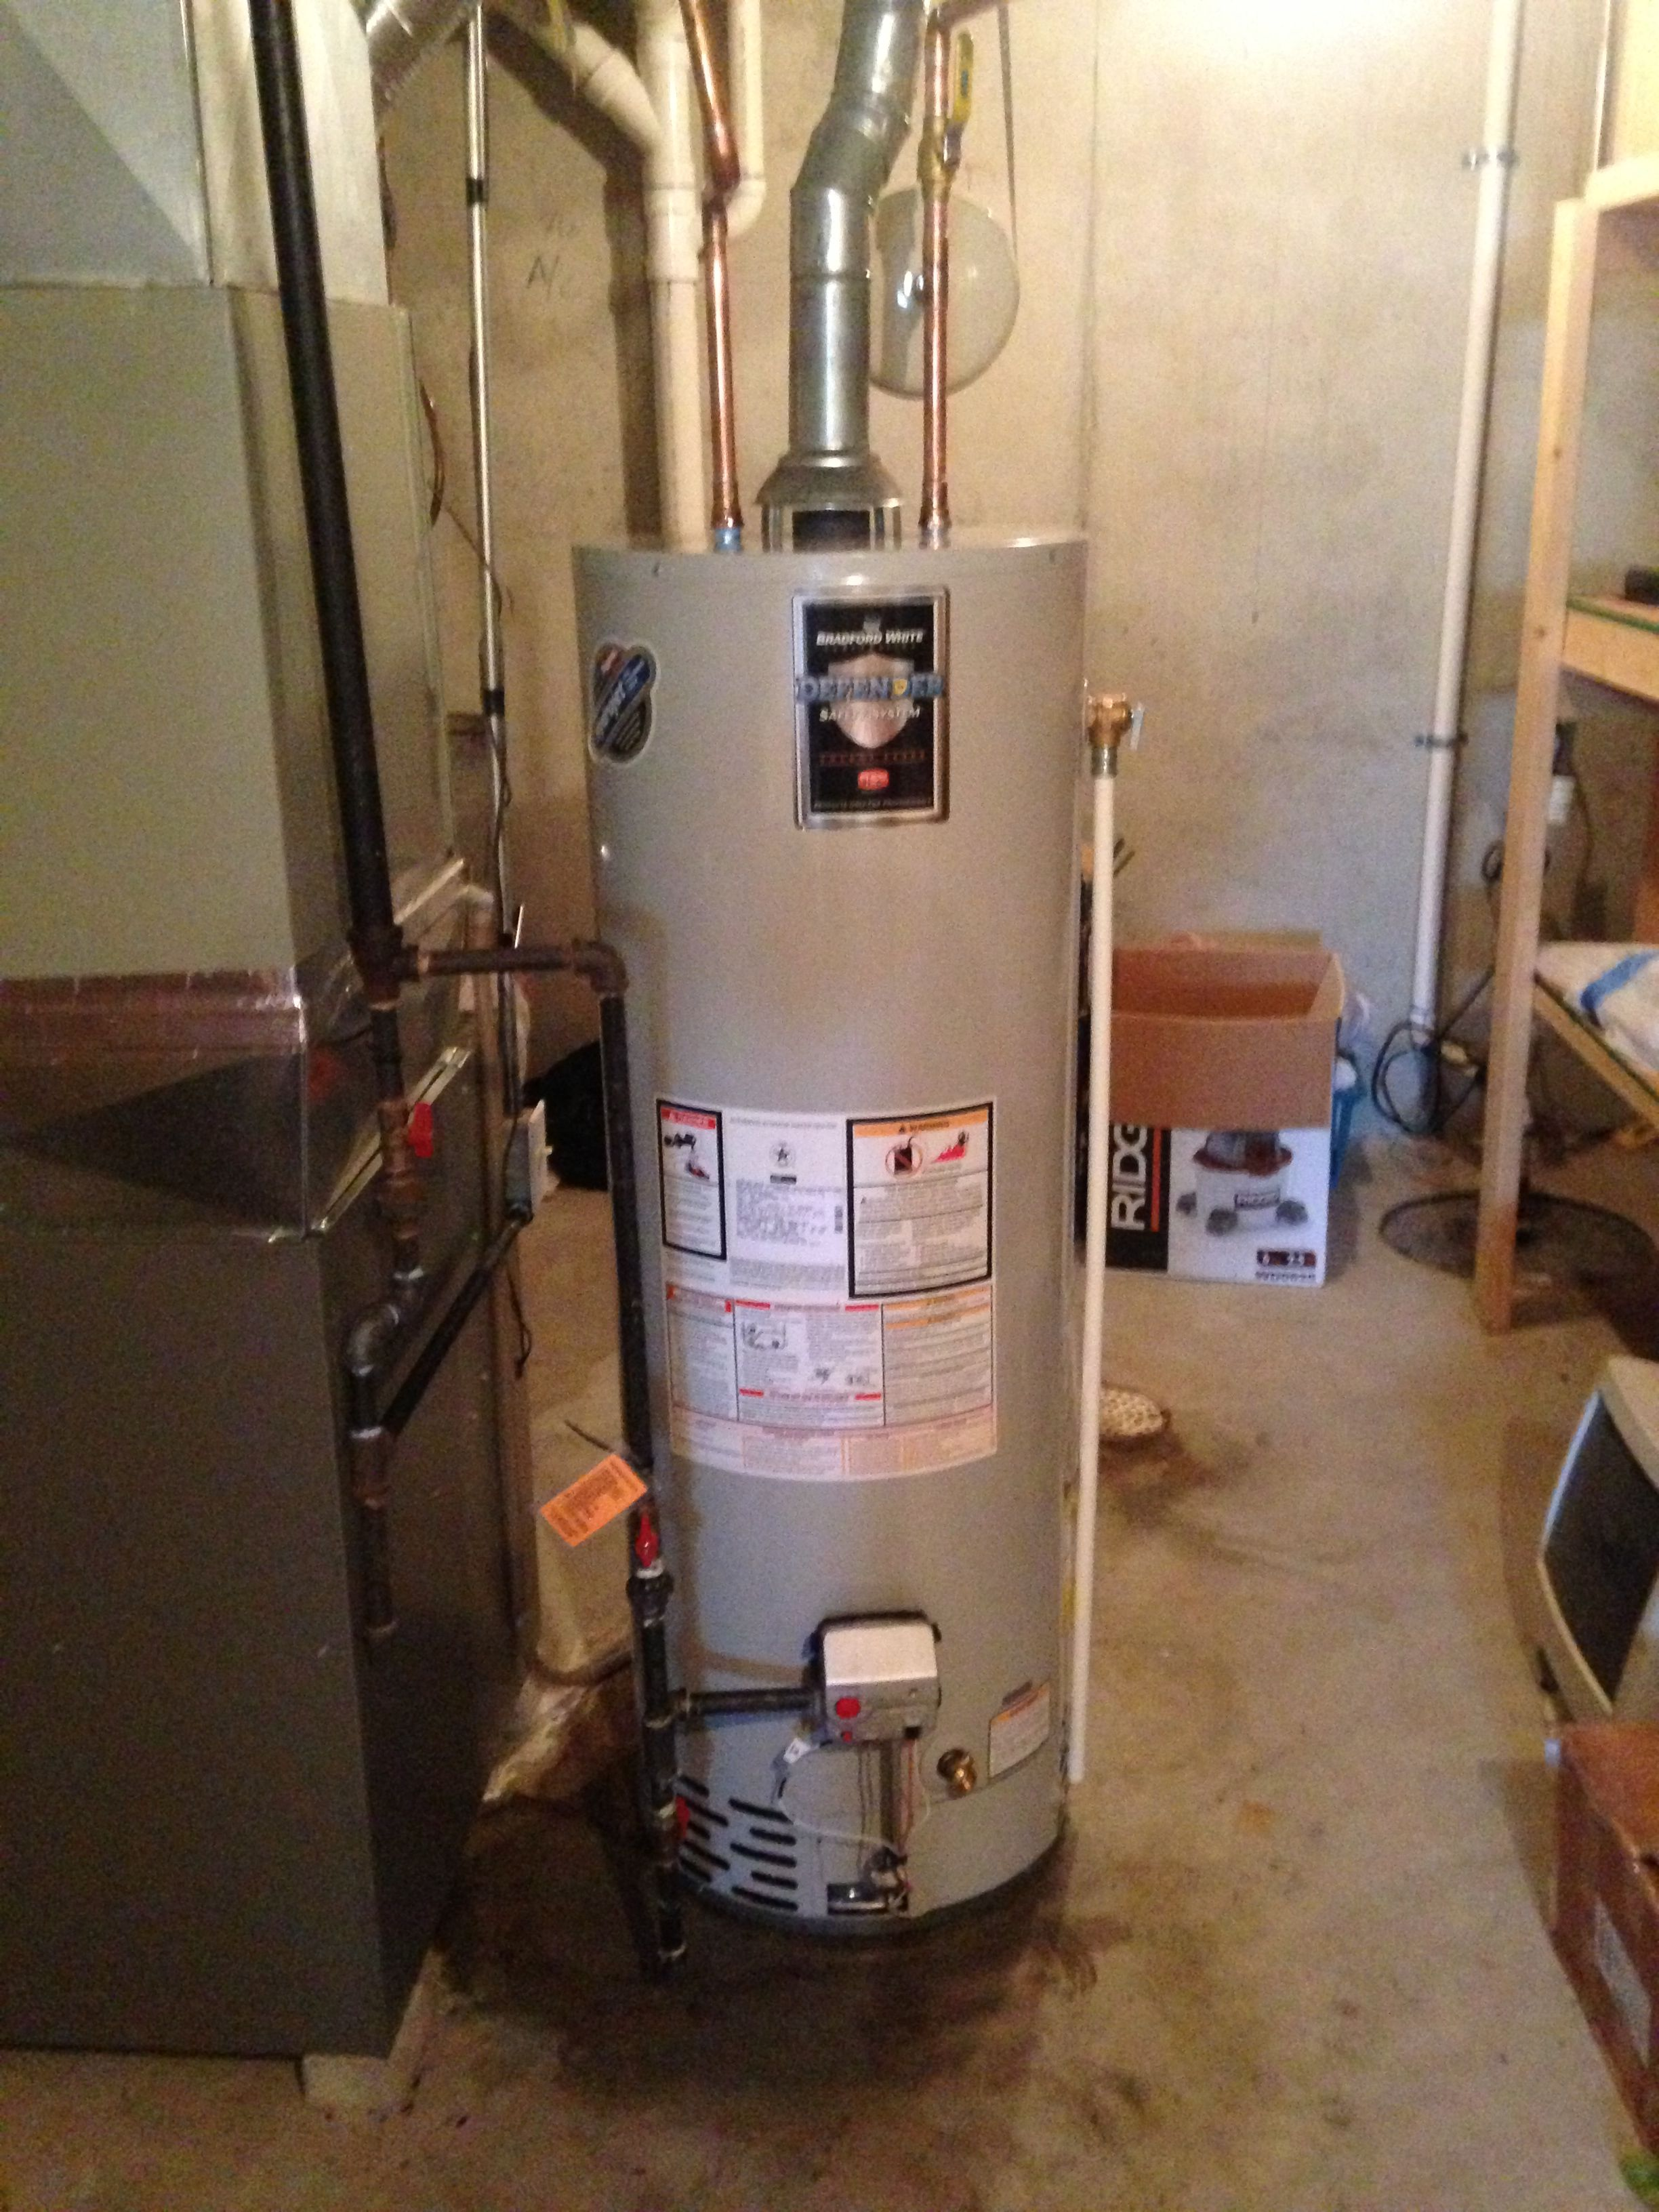 Water Heater Installation In Olathe Ks 66062 With New Valves And Expansion Tank Water Heater Installation Water Heater Installation